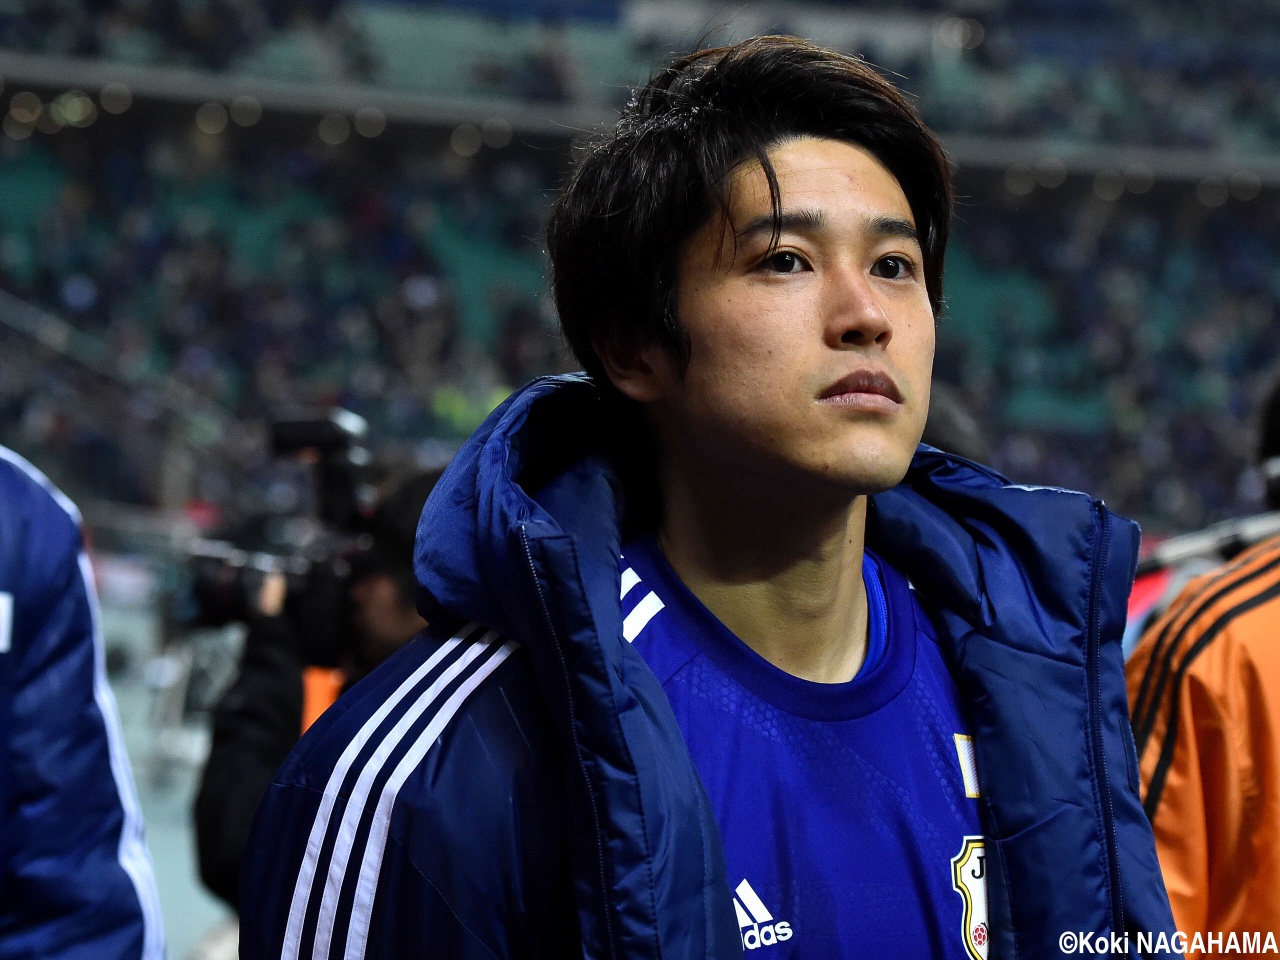 uchida_happy_birthday.jpg